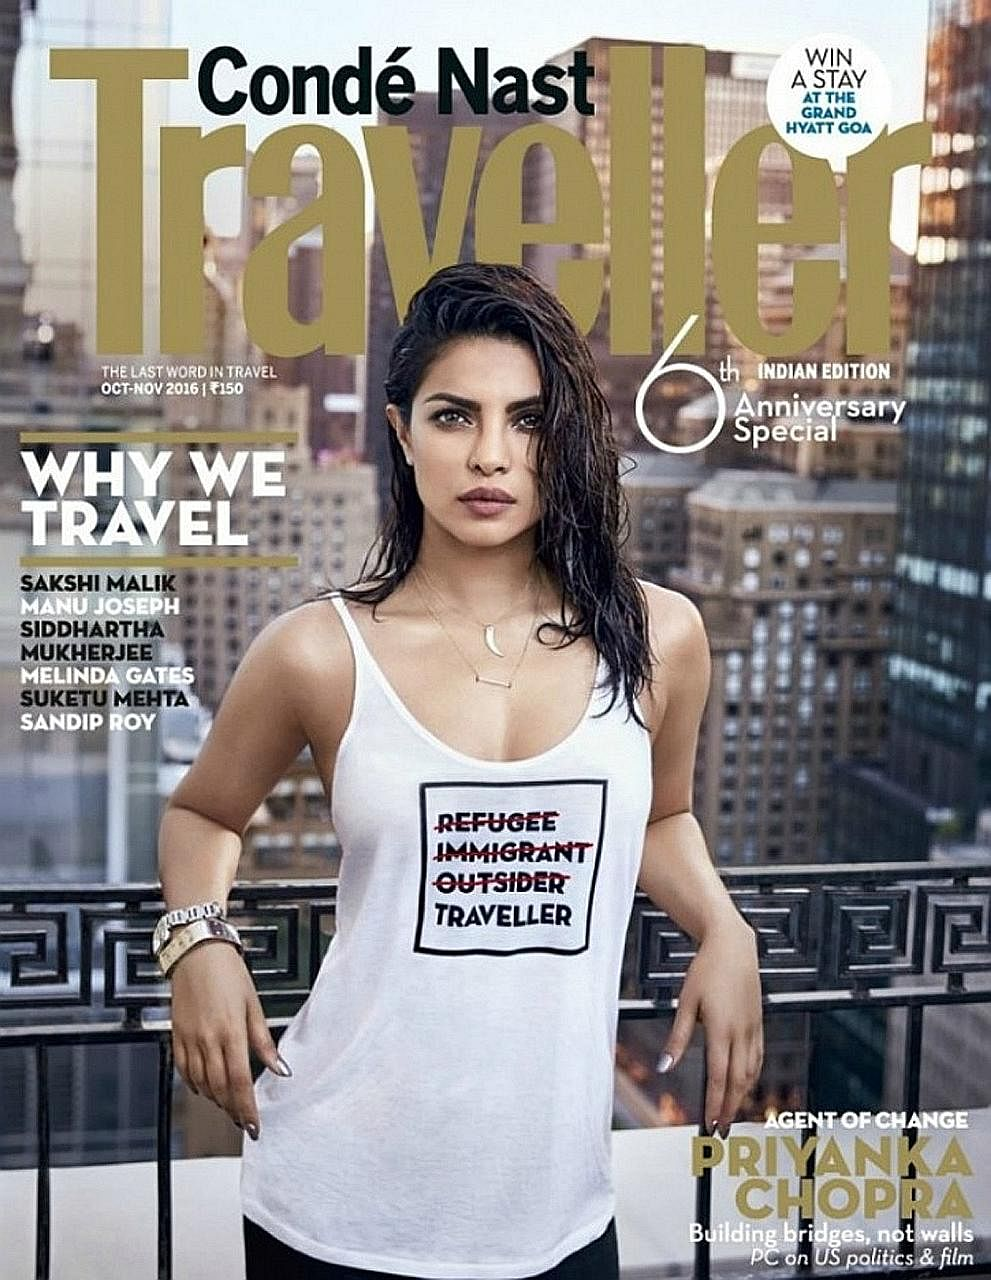 The magazine cover of Bollywood actress Priyanka Chopra prompted a flurry of criticism on social media.